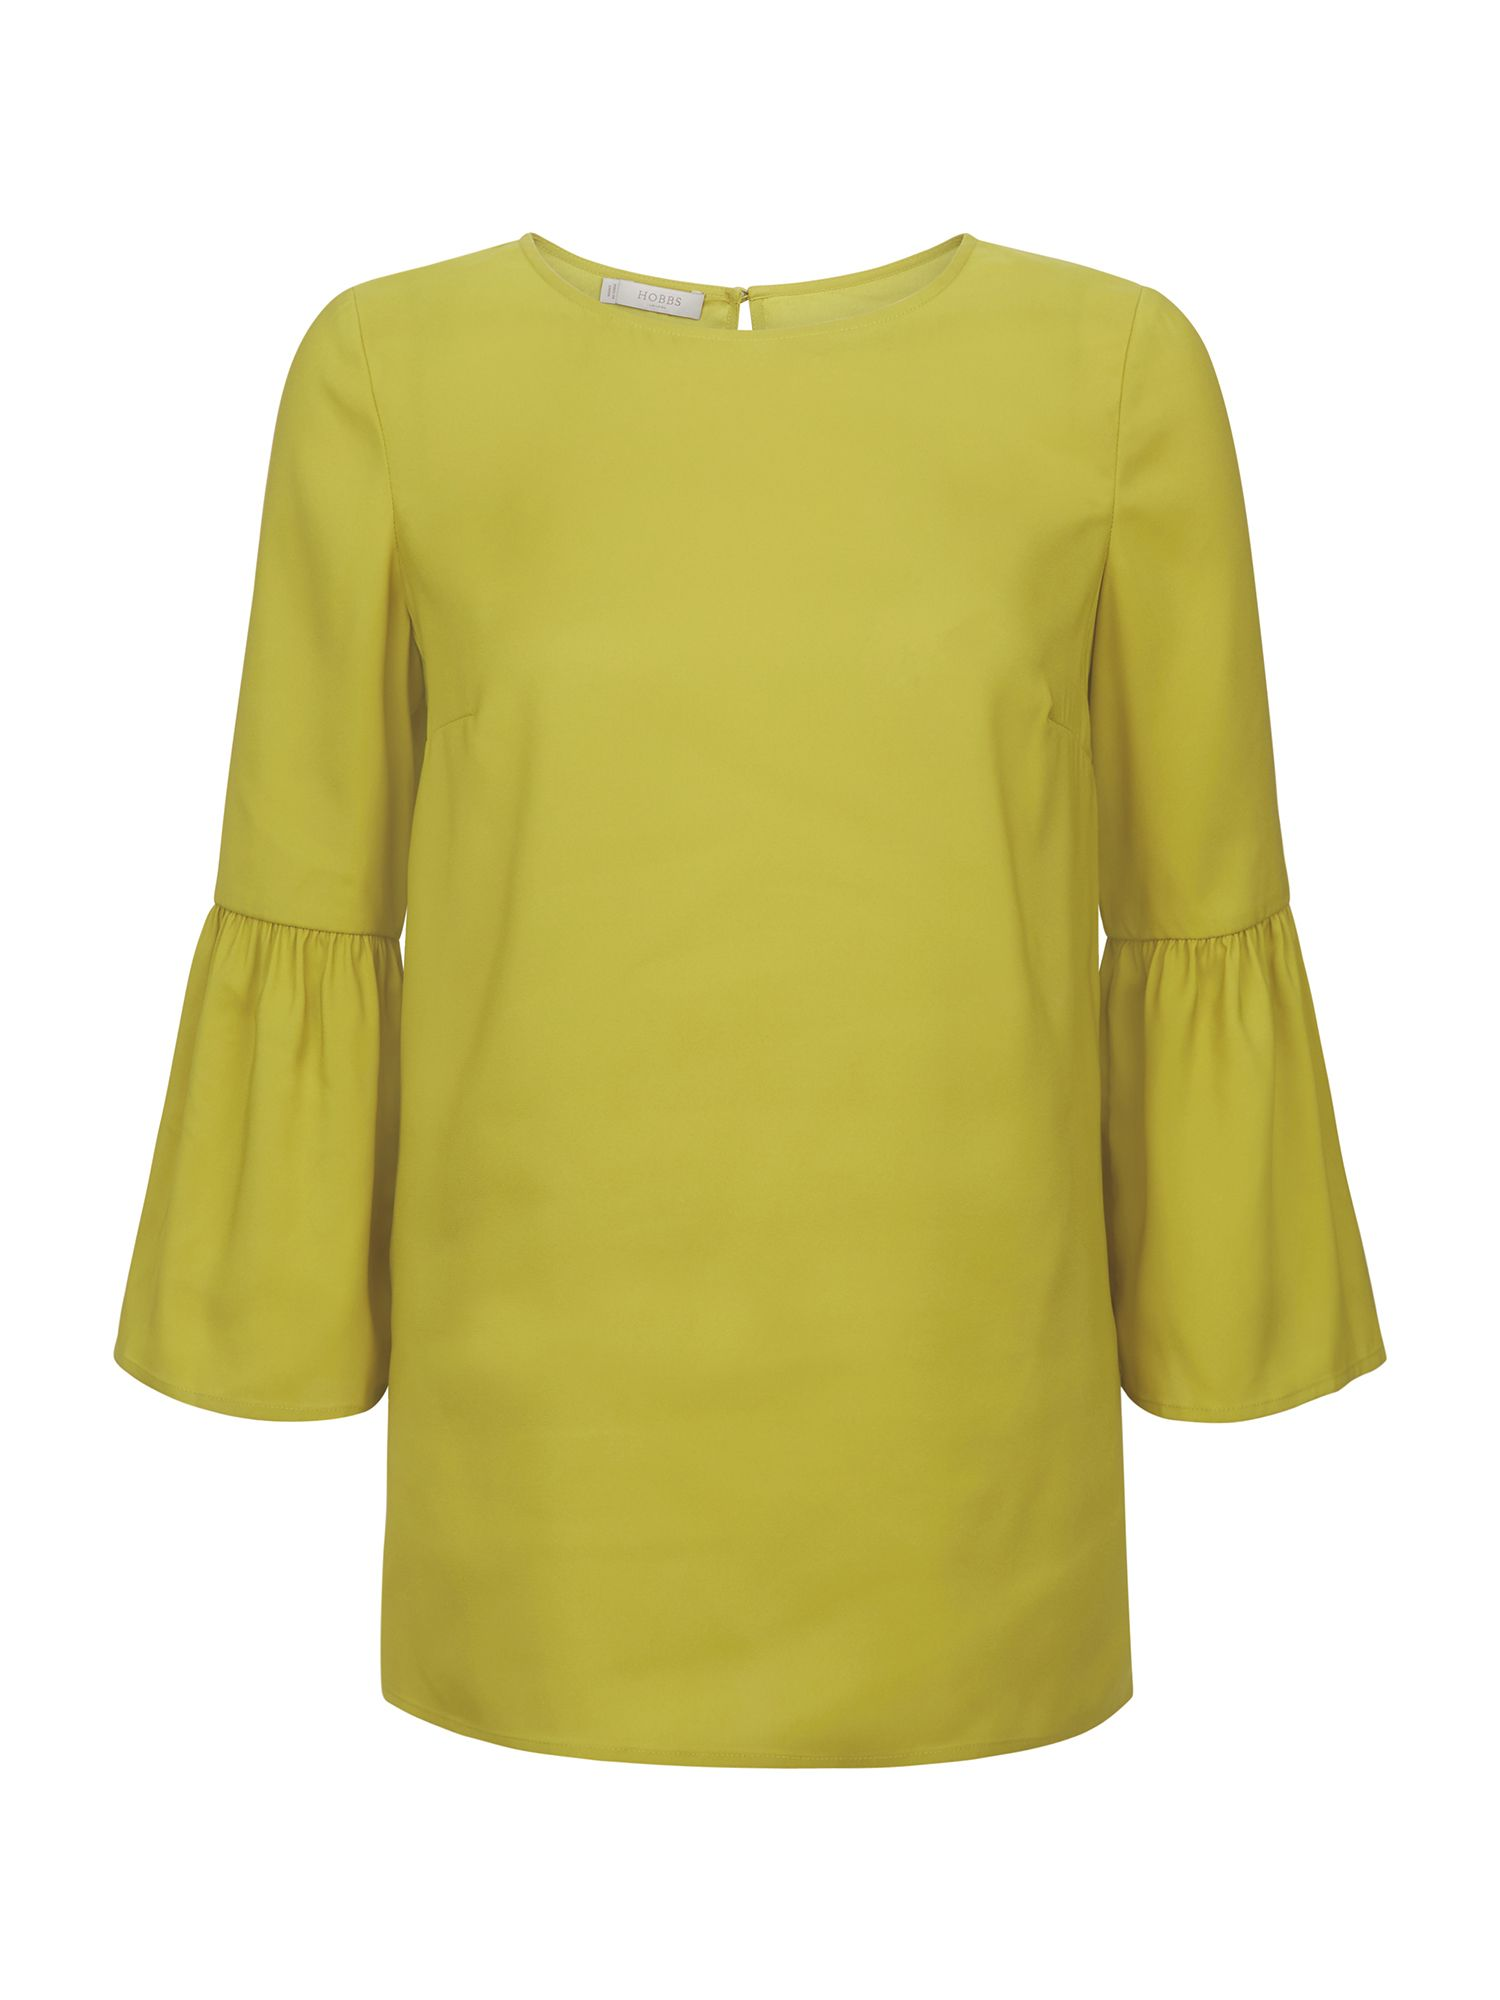 Hobbs Louisa Top, Yellow